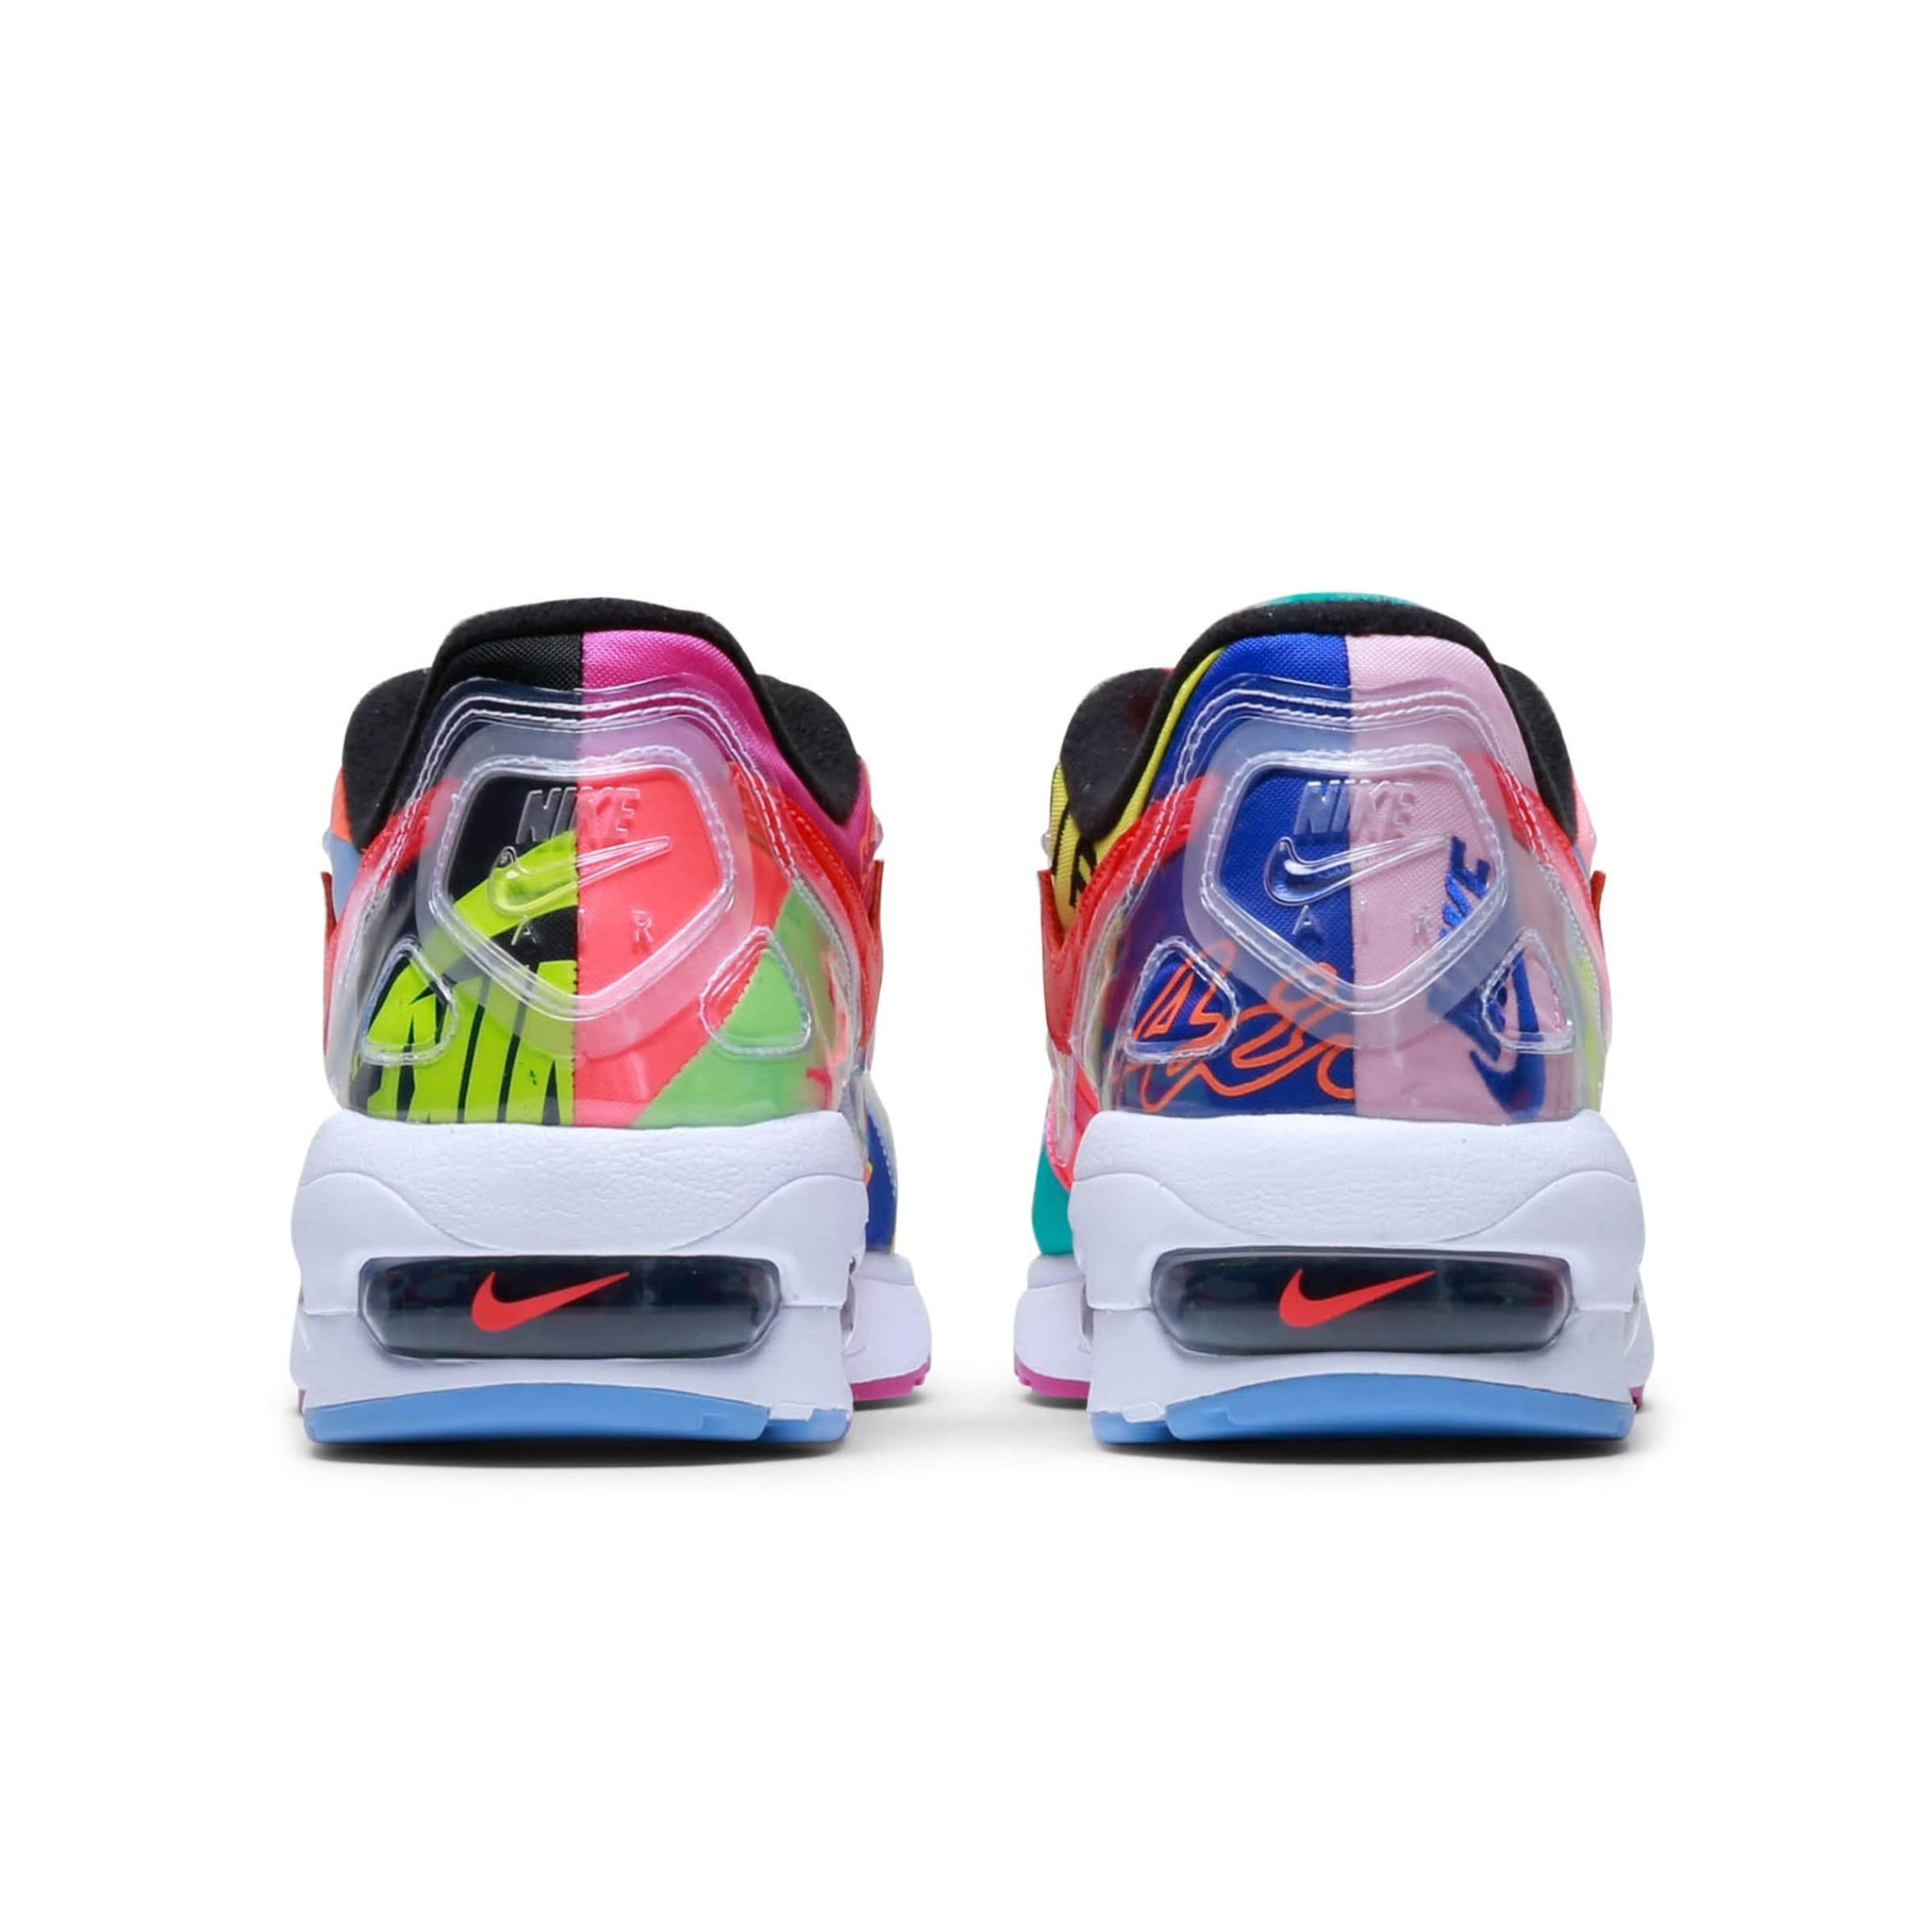 on sale a4c75 19dd4 Nike X Atmos AIR MAX2 LIGHT QS BV7406 001